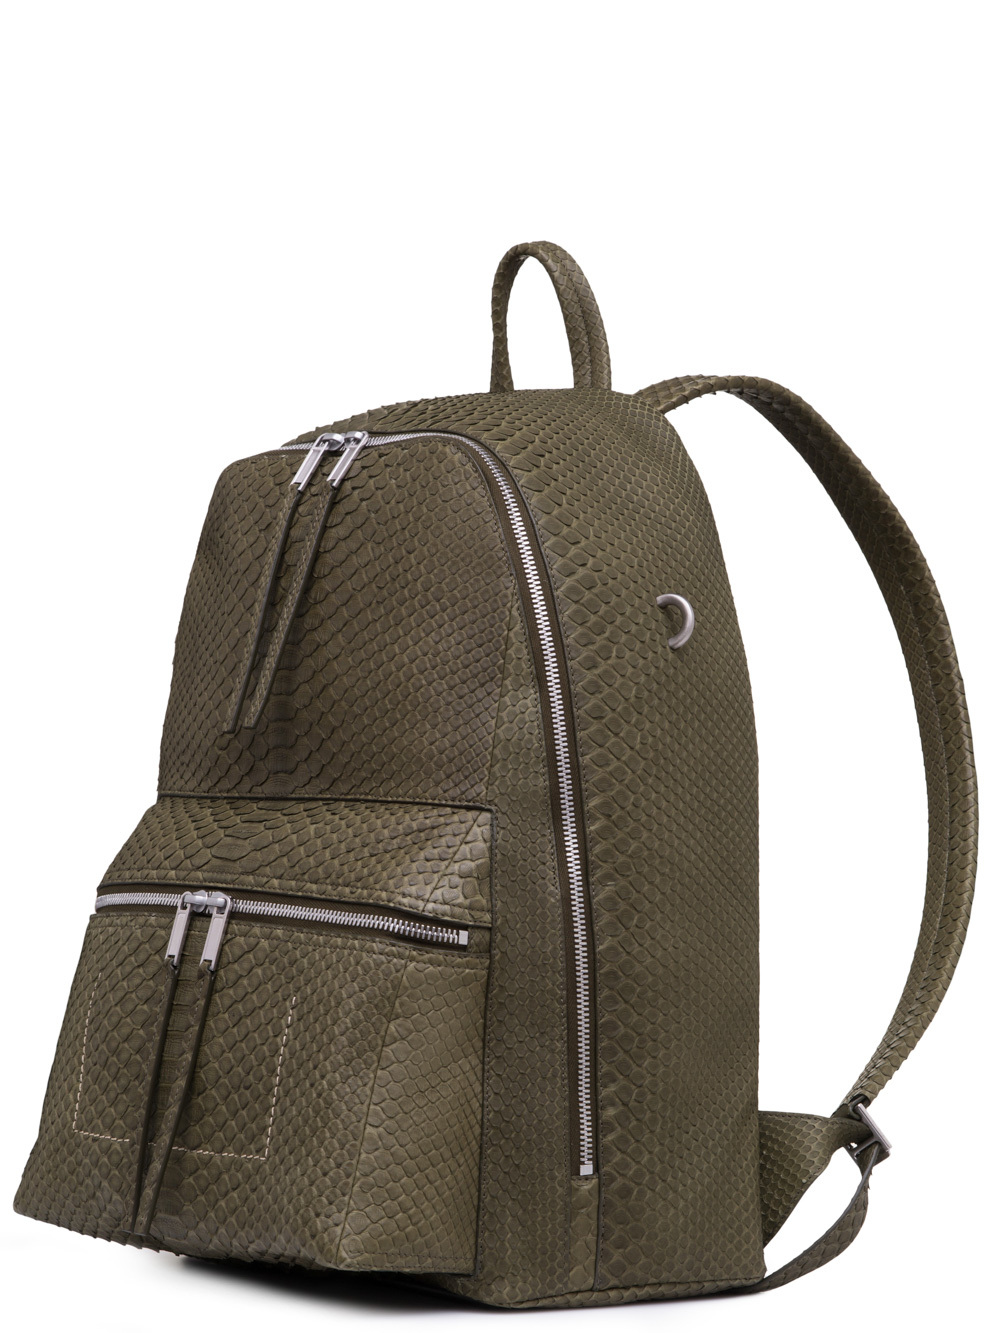 RICK OWENS BACKPACK IN DIRTY GREEN PYTHON LEATHER